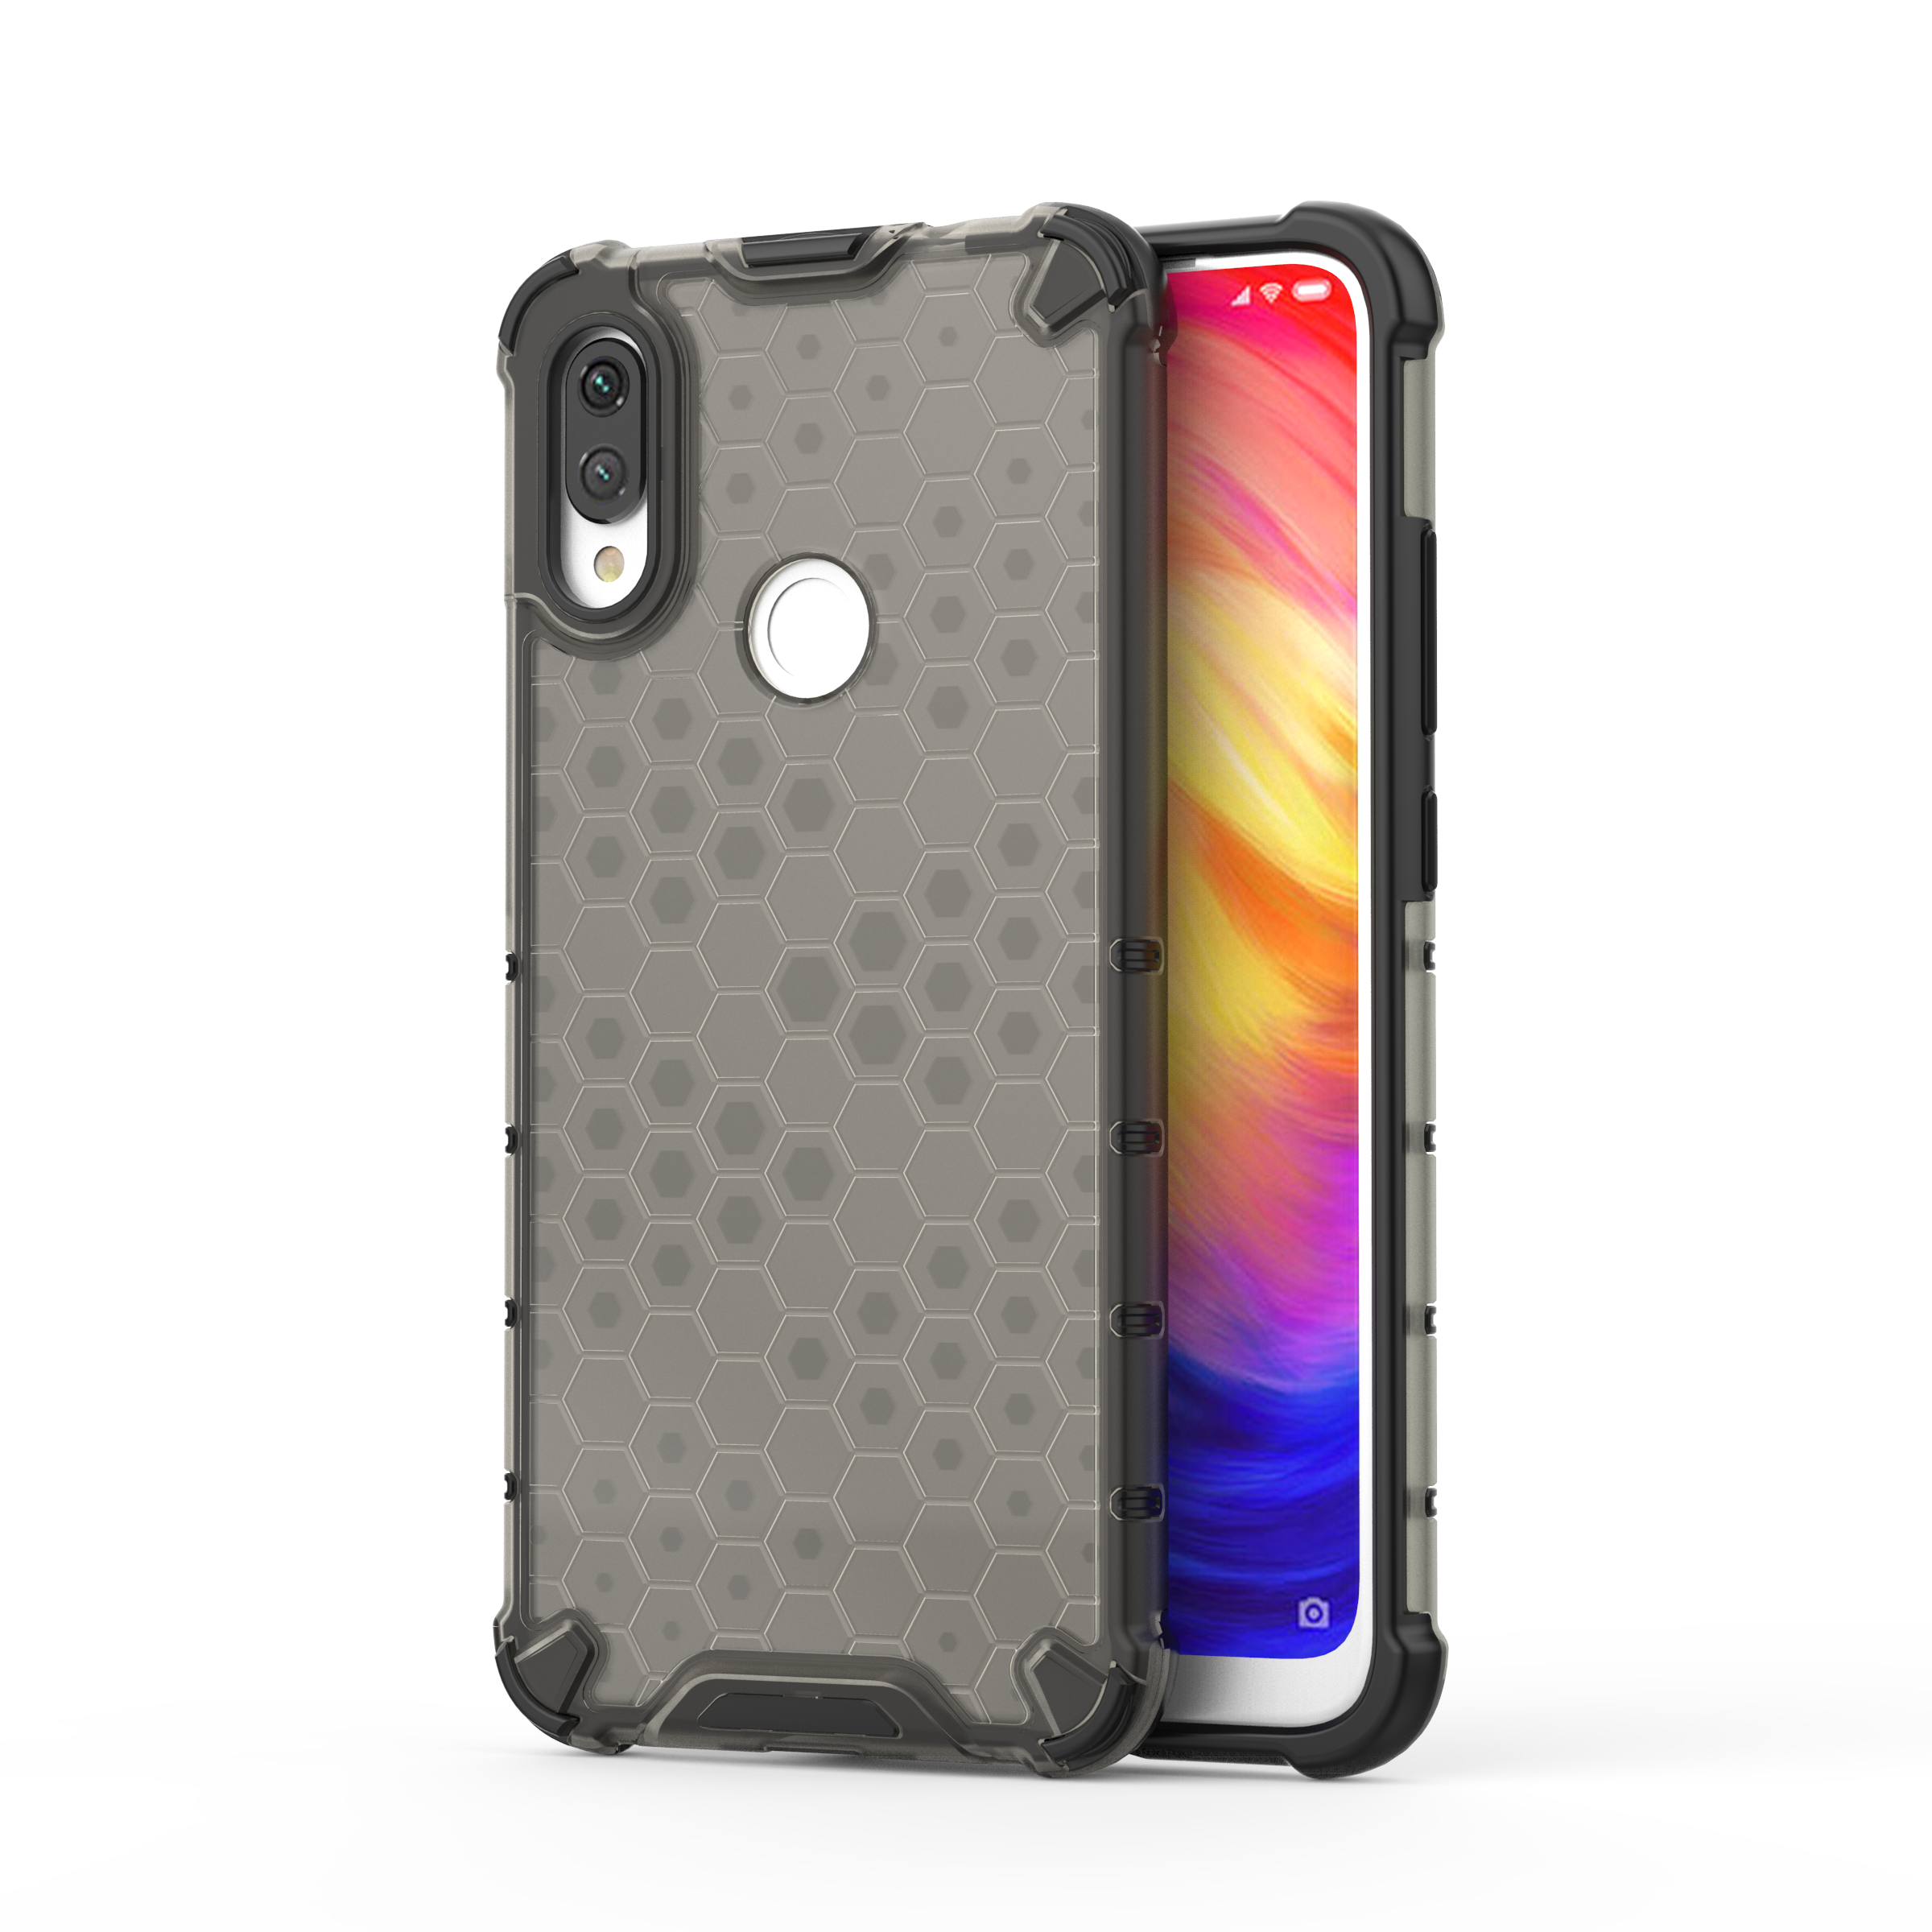 RKINC Back cover Ultra Slim Phone Case Four Corners Honeycomb Pattern Anti Crack Protective For Xiaomi Redmi <strong>Y3</strong>